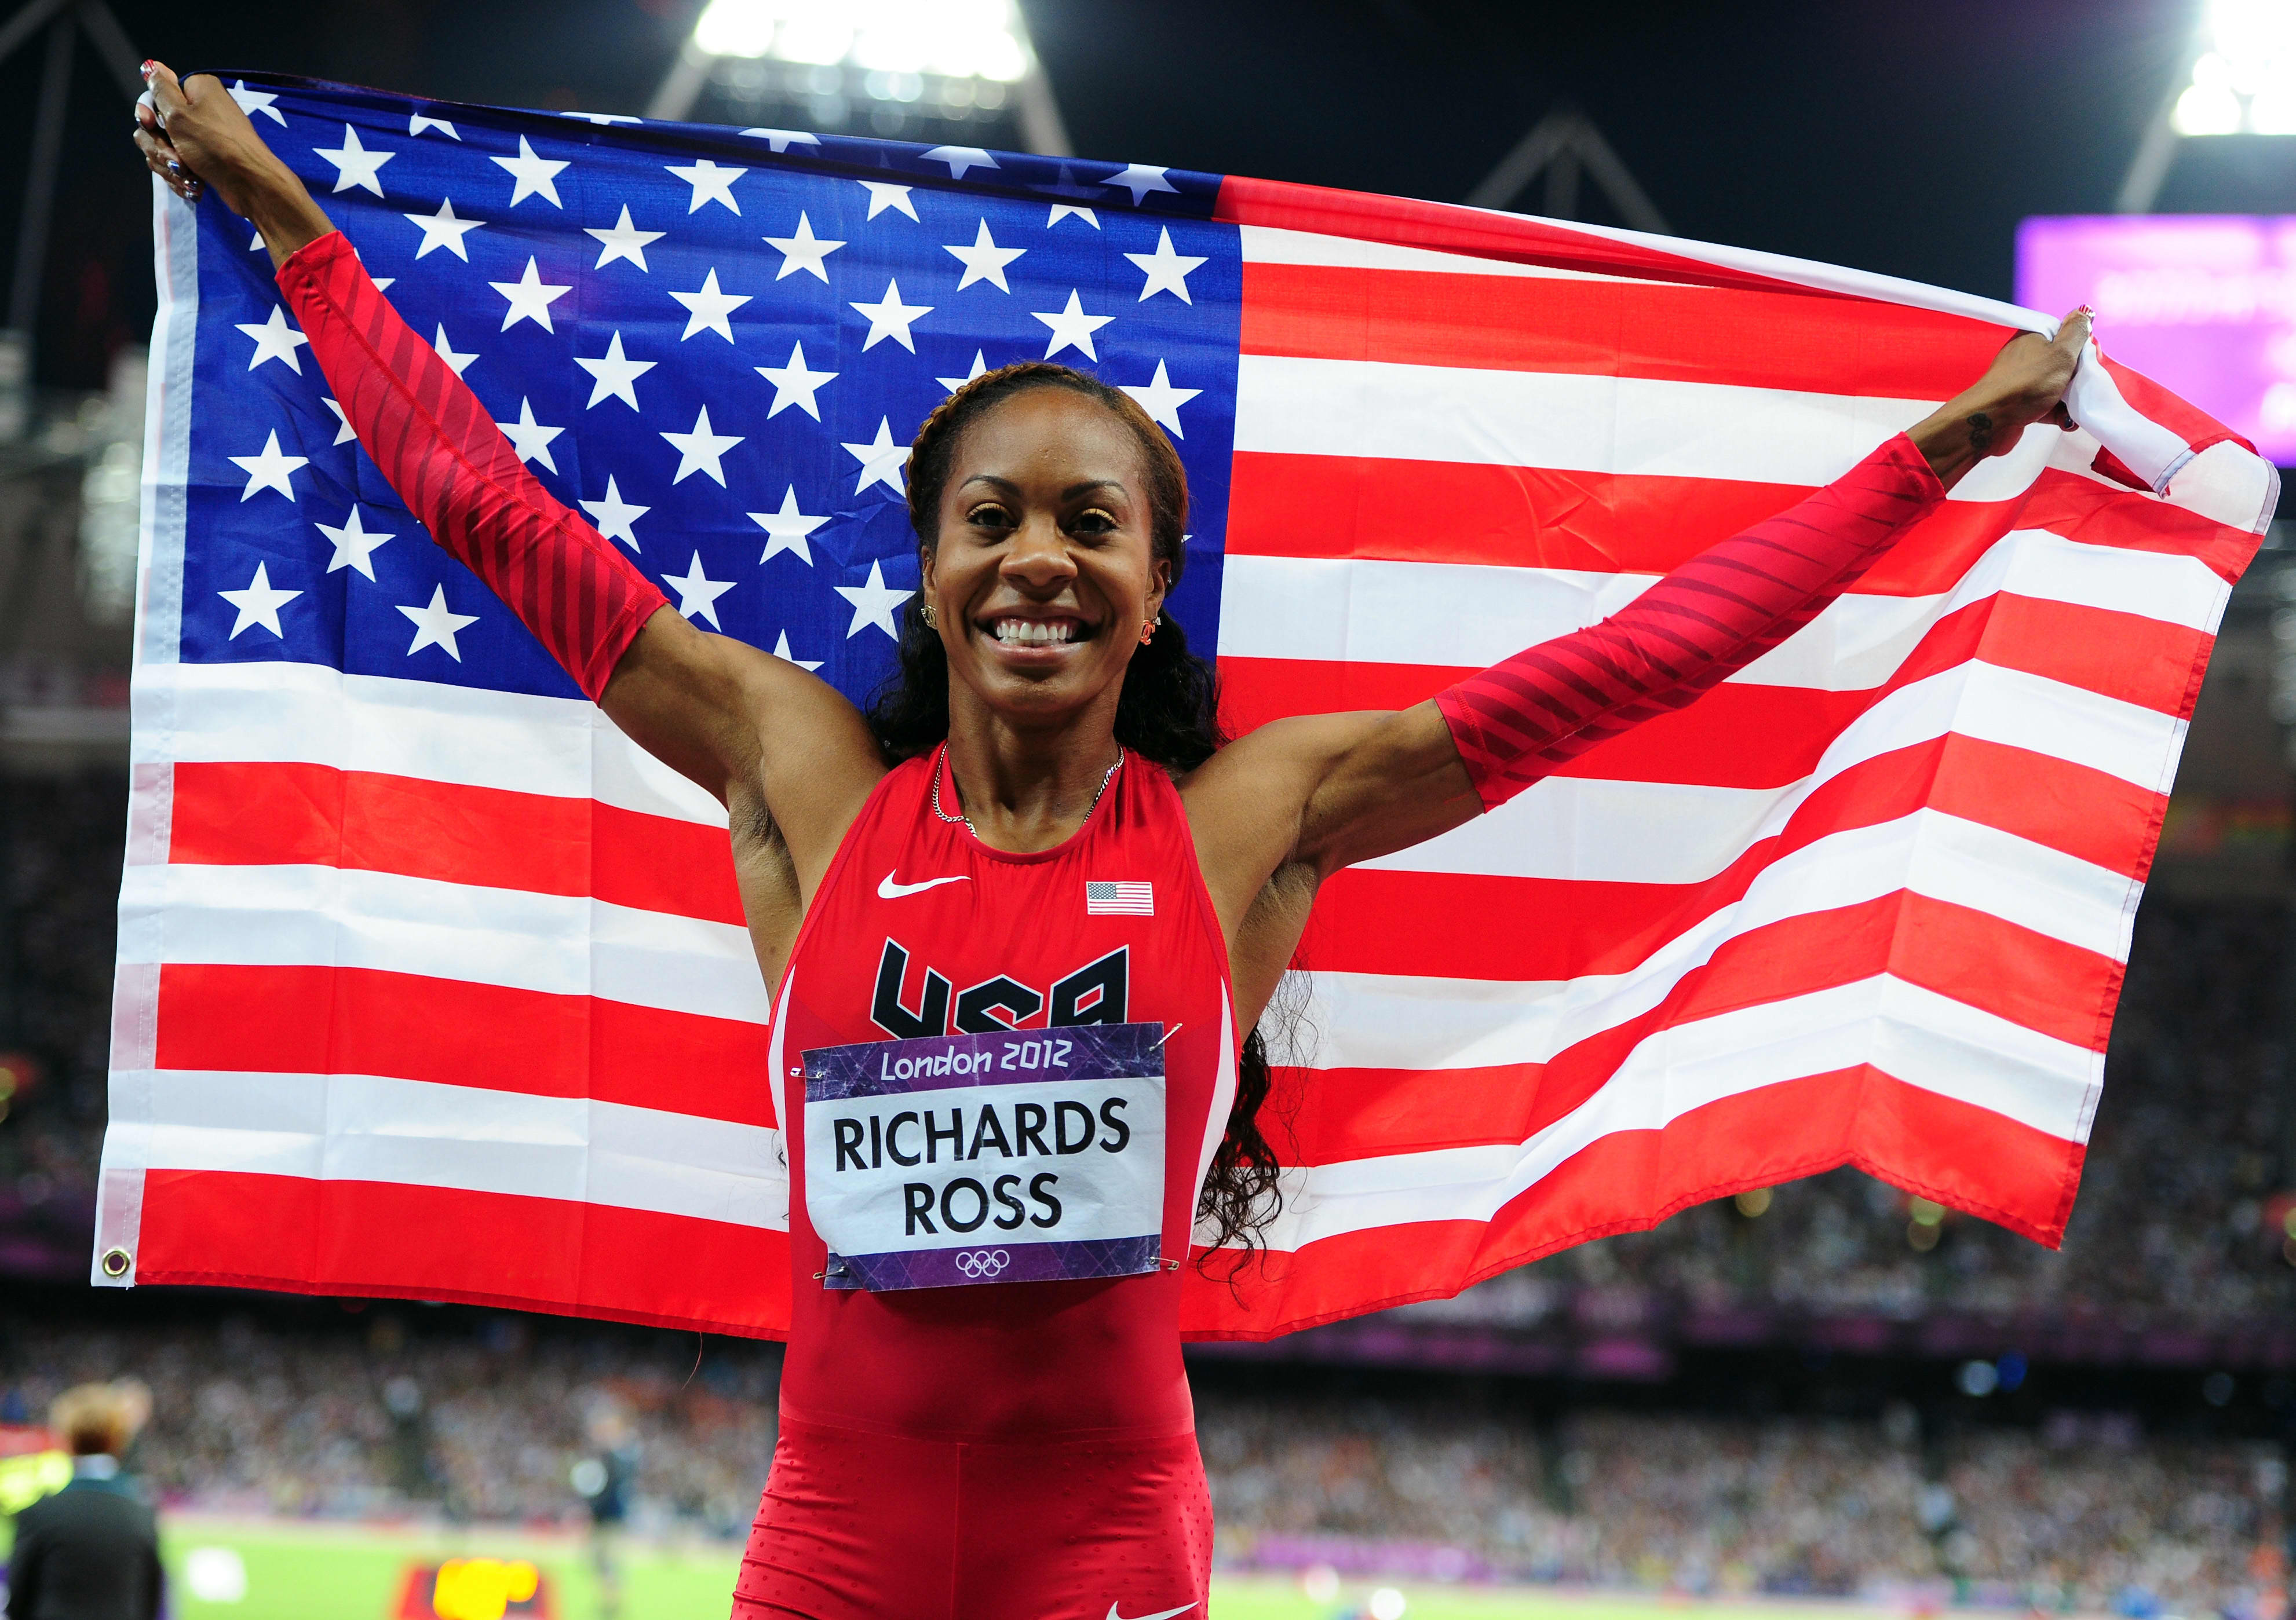 Watch Sanya Richards-Ross 5 Olympic medals video